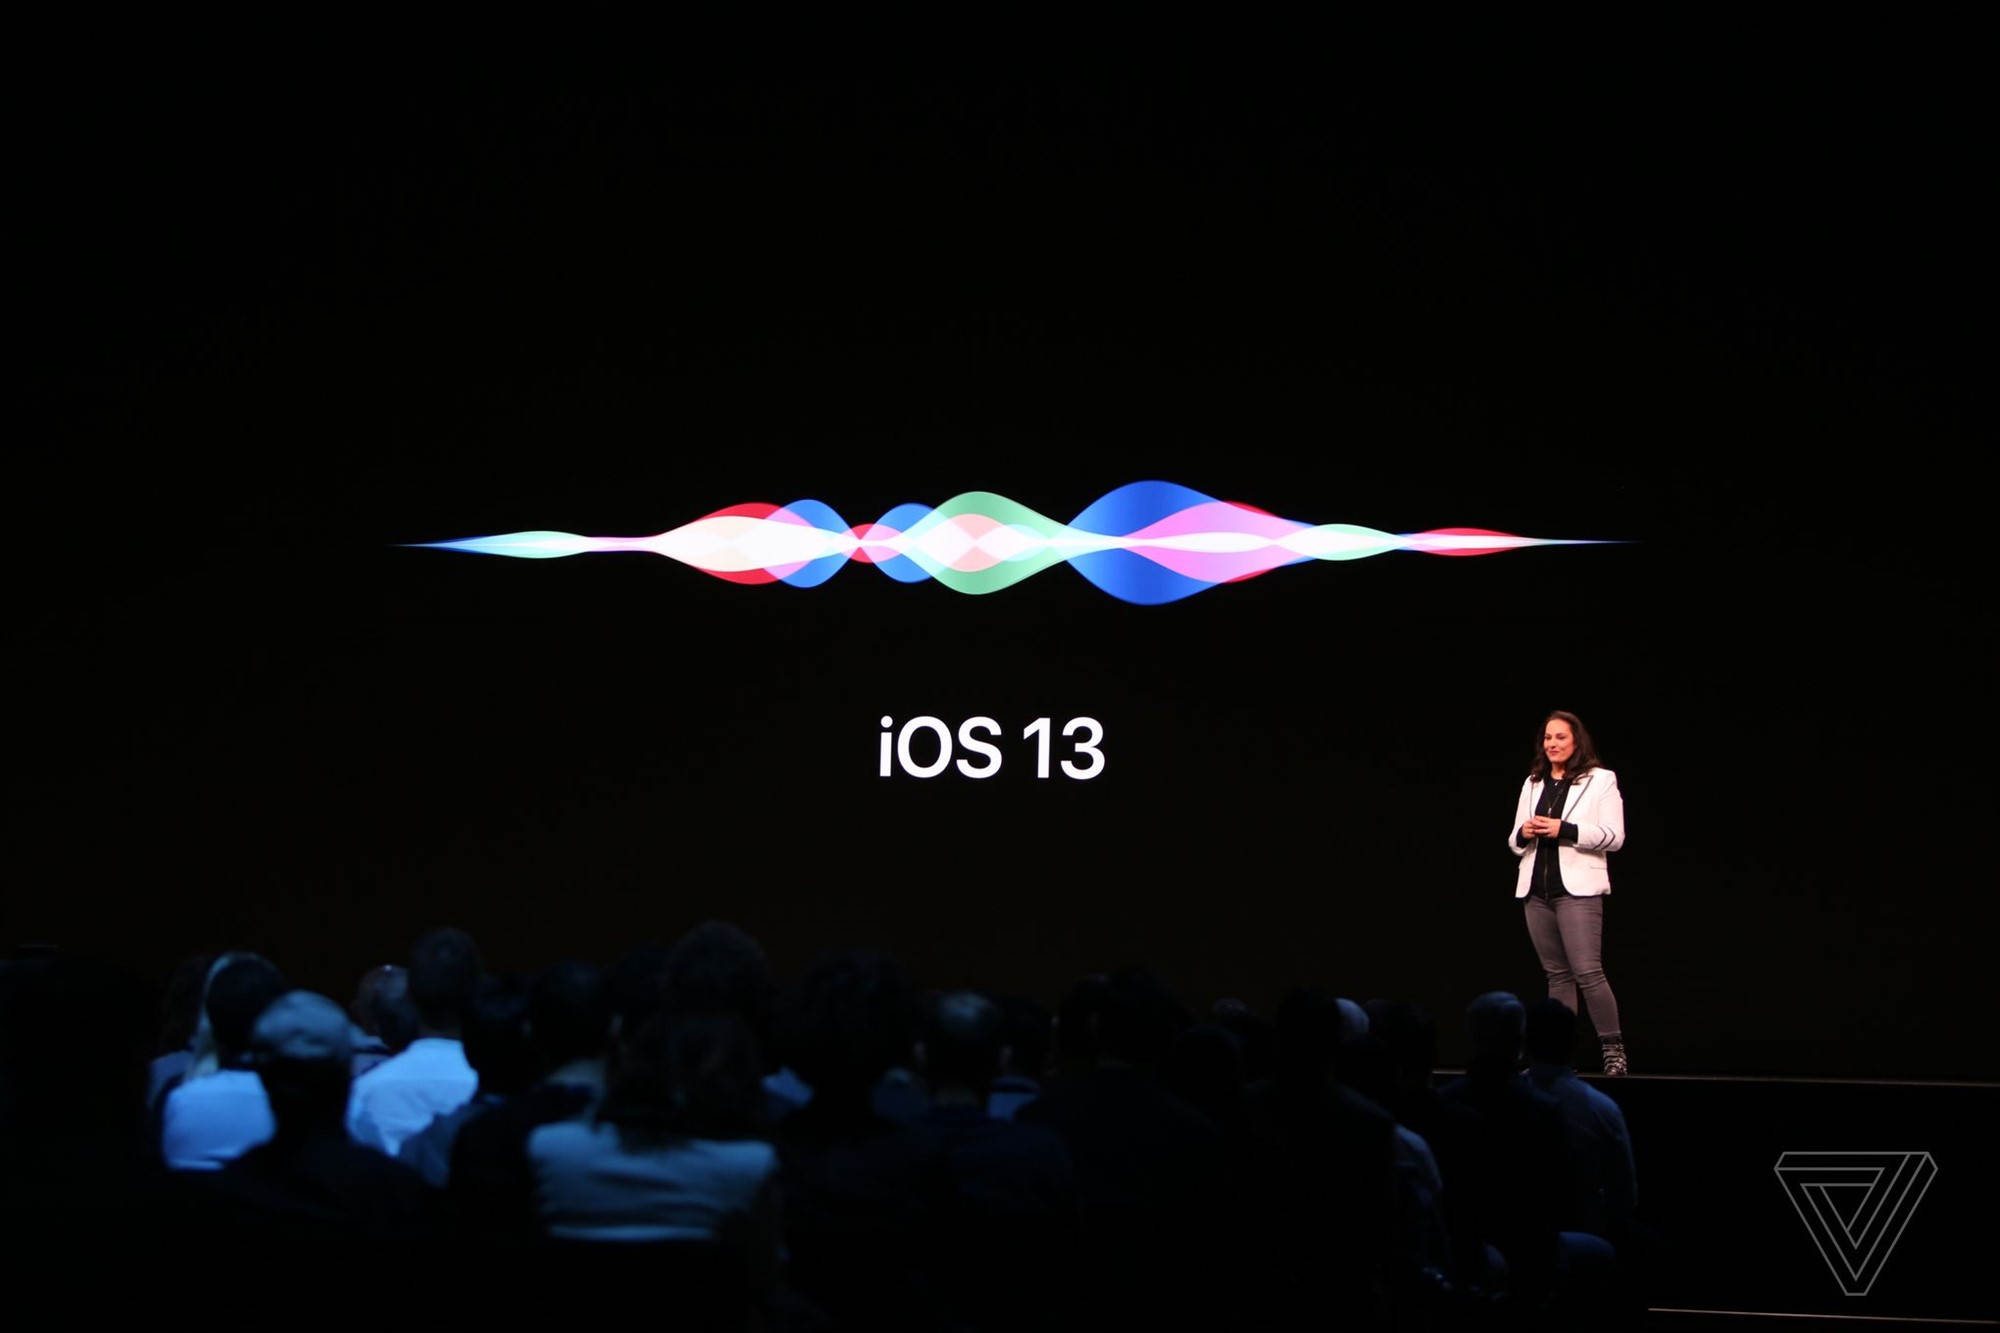 Siri is getting a new voice in iOS 13 - The Verge